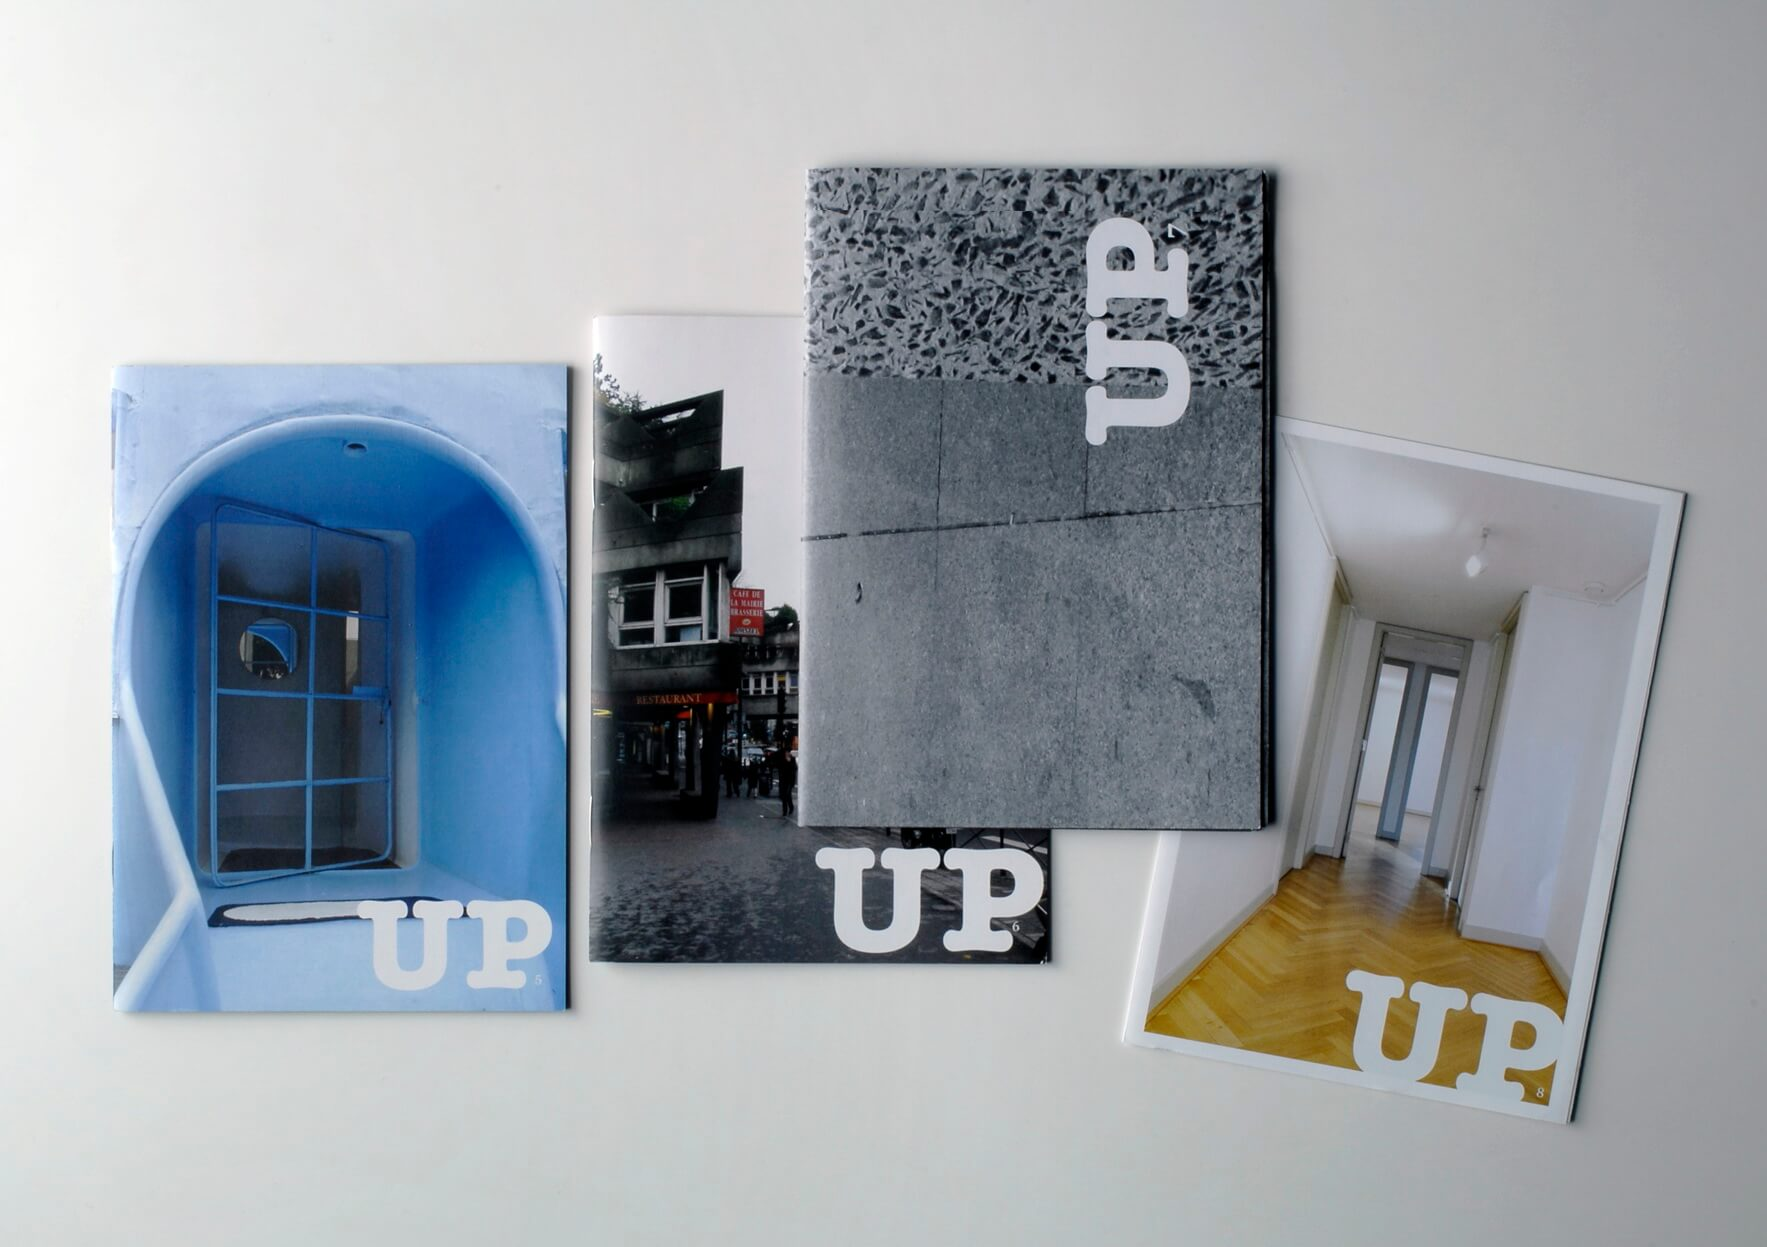 | Up (1 to 8) | ProjecteSD